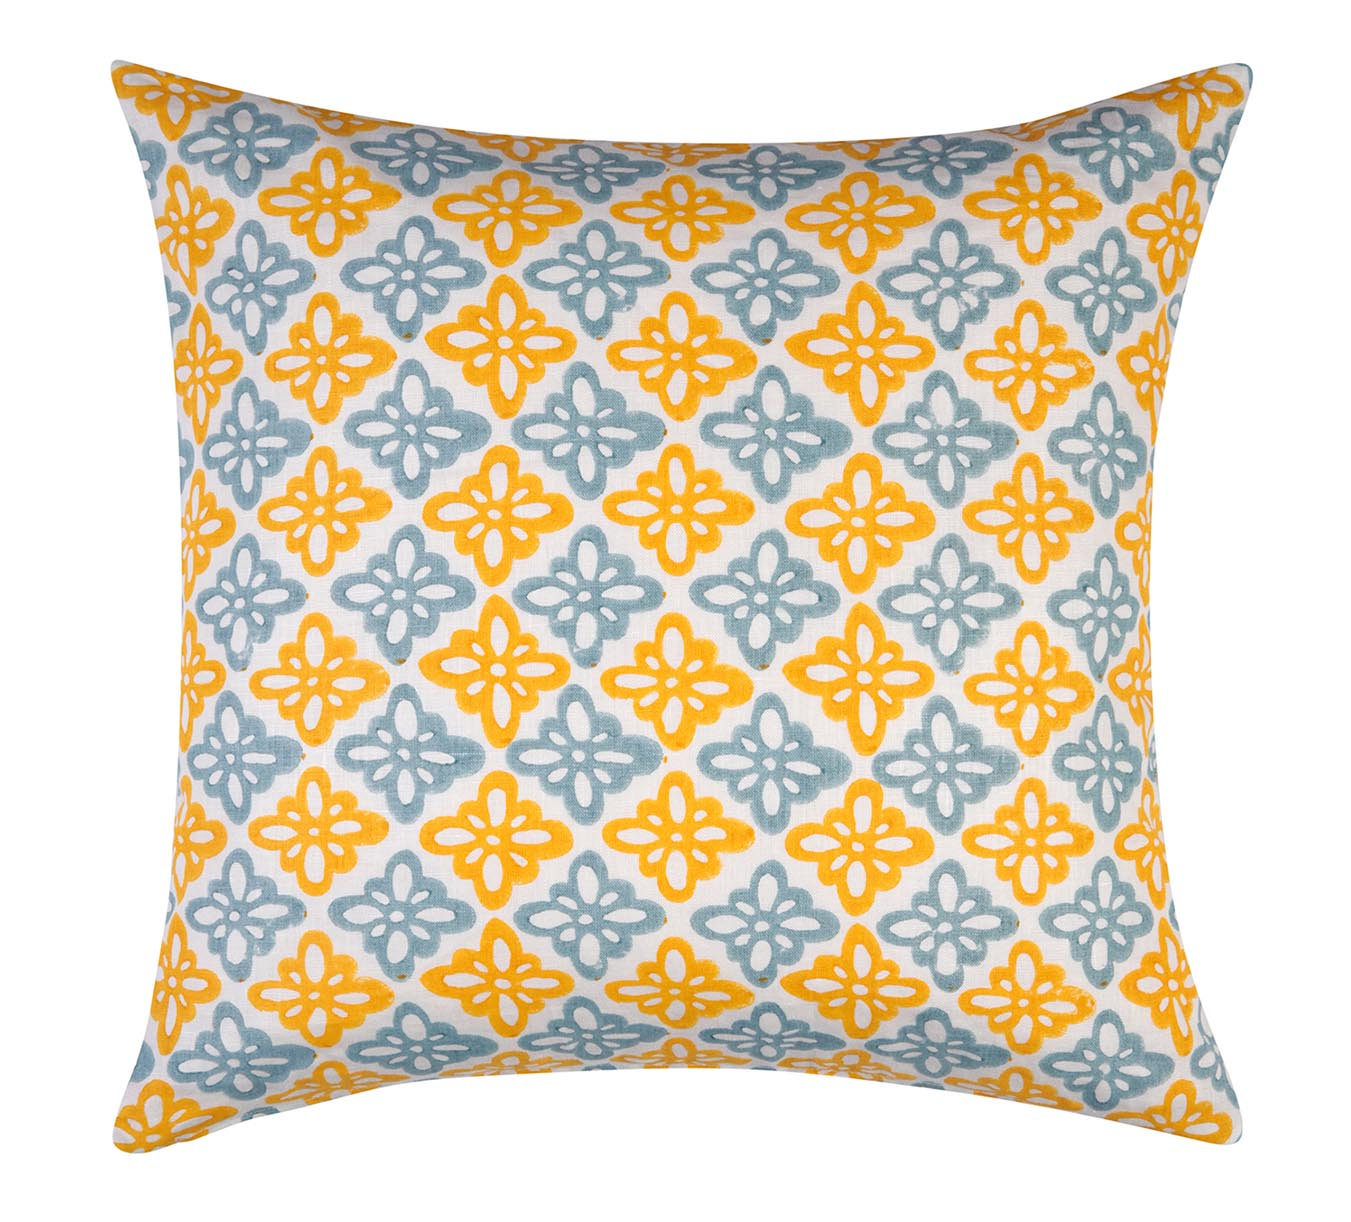 Cushion - Pattee - Turmeric